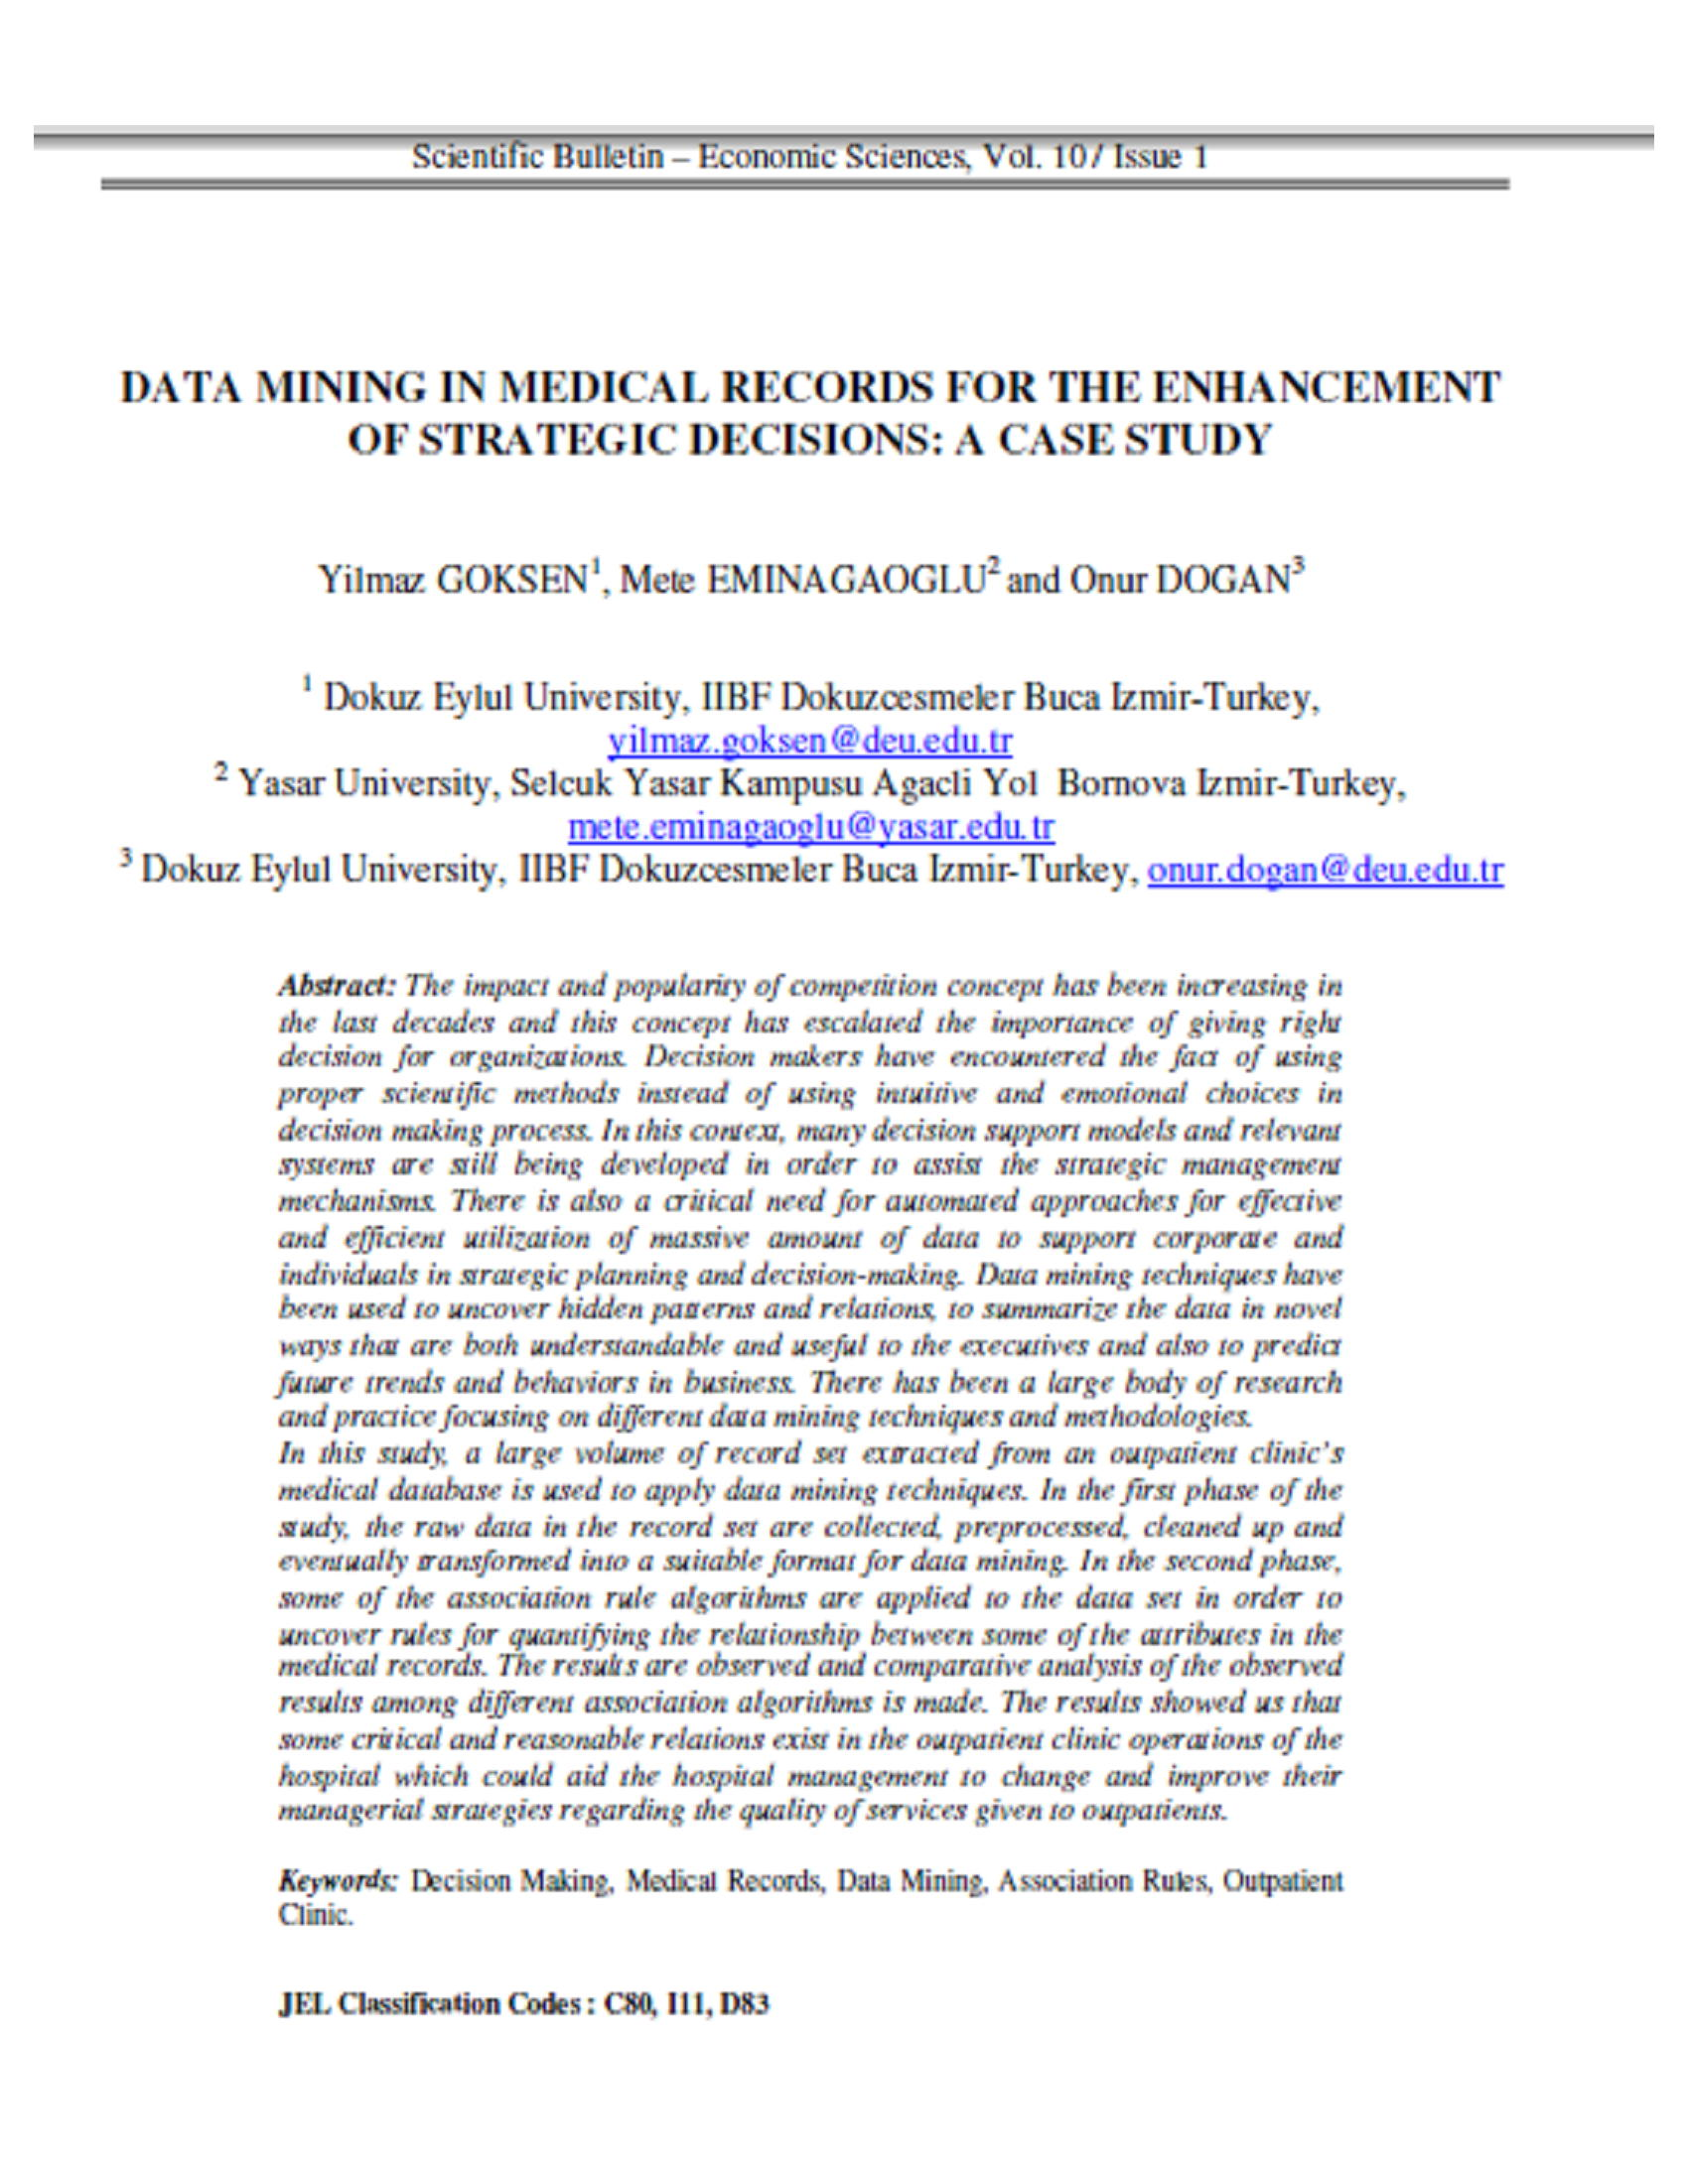 DATA MINING IN MEDICAL RECORDS FOR THE ENHANCEMENT OF STRATEGIC DECISIONS 10